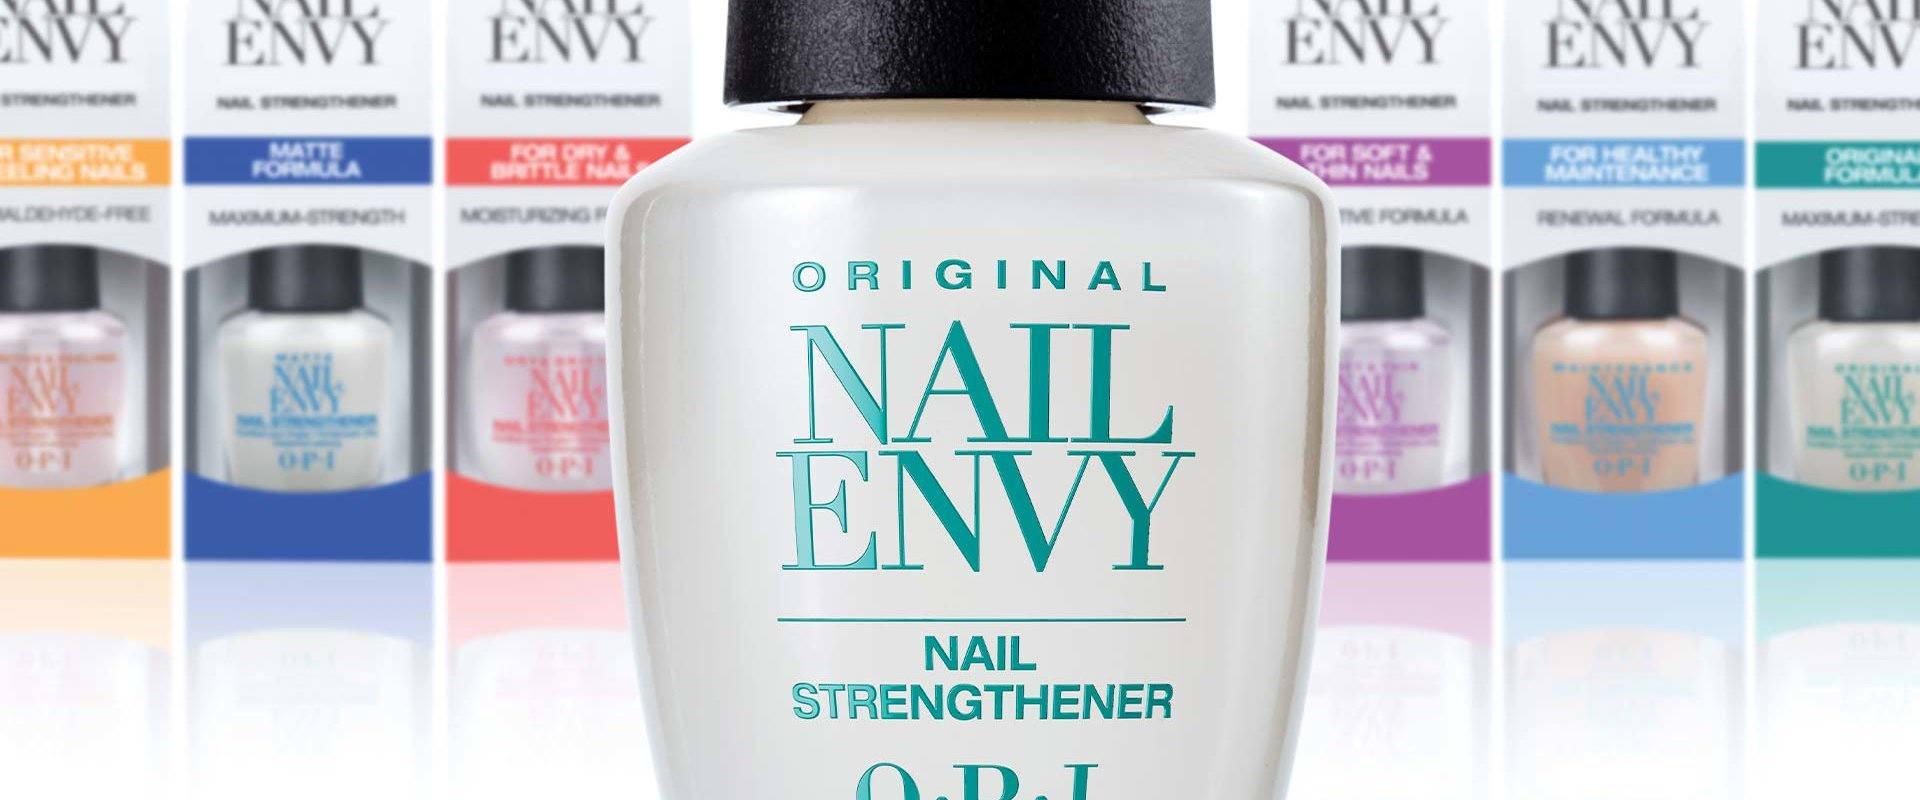 Nail Envy OPI Care Products | OPI